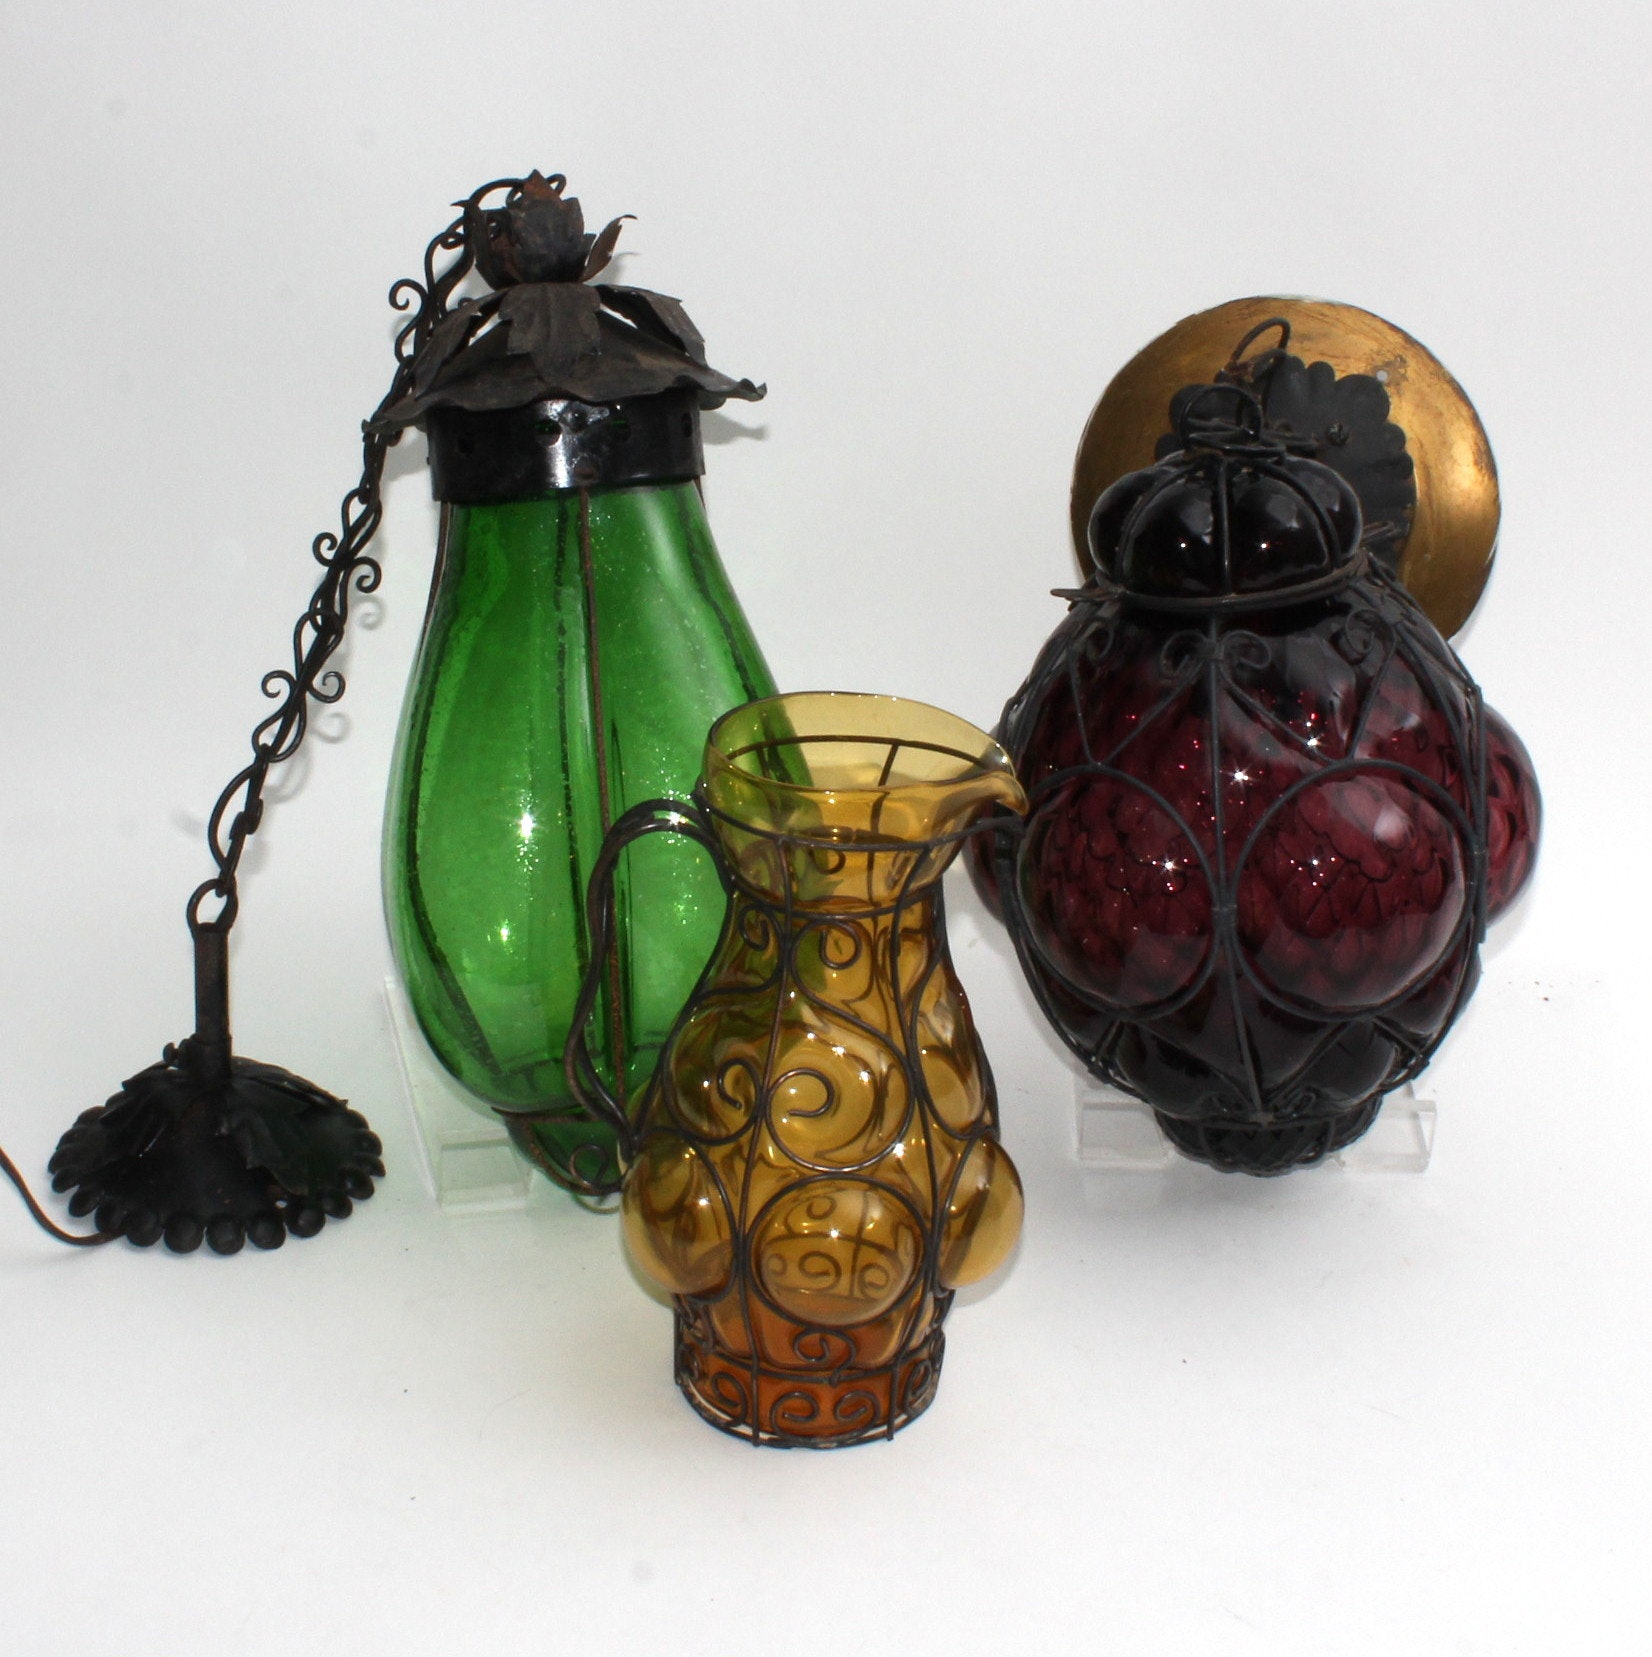 Vintage Hand-Blown Venetian Glass Hanging Lamps and Pitcher